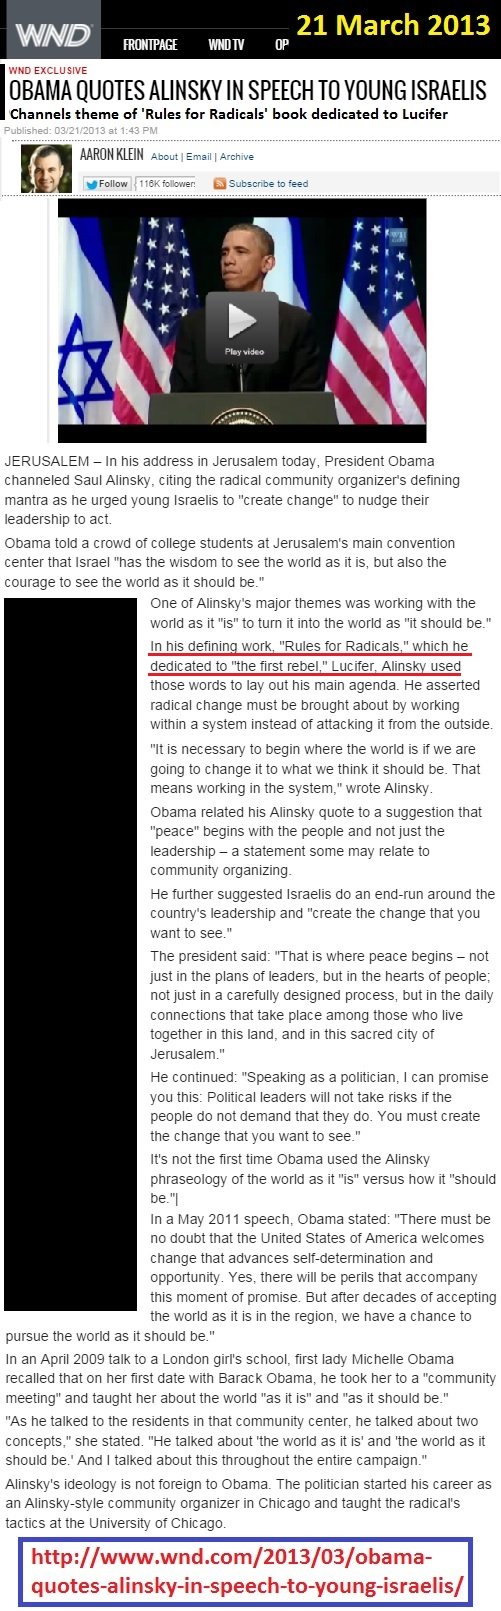 https://www.wnd.com/2013/03/obama-quotes-alinsky-in-speech-to-young-israelis/